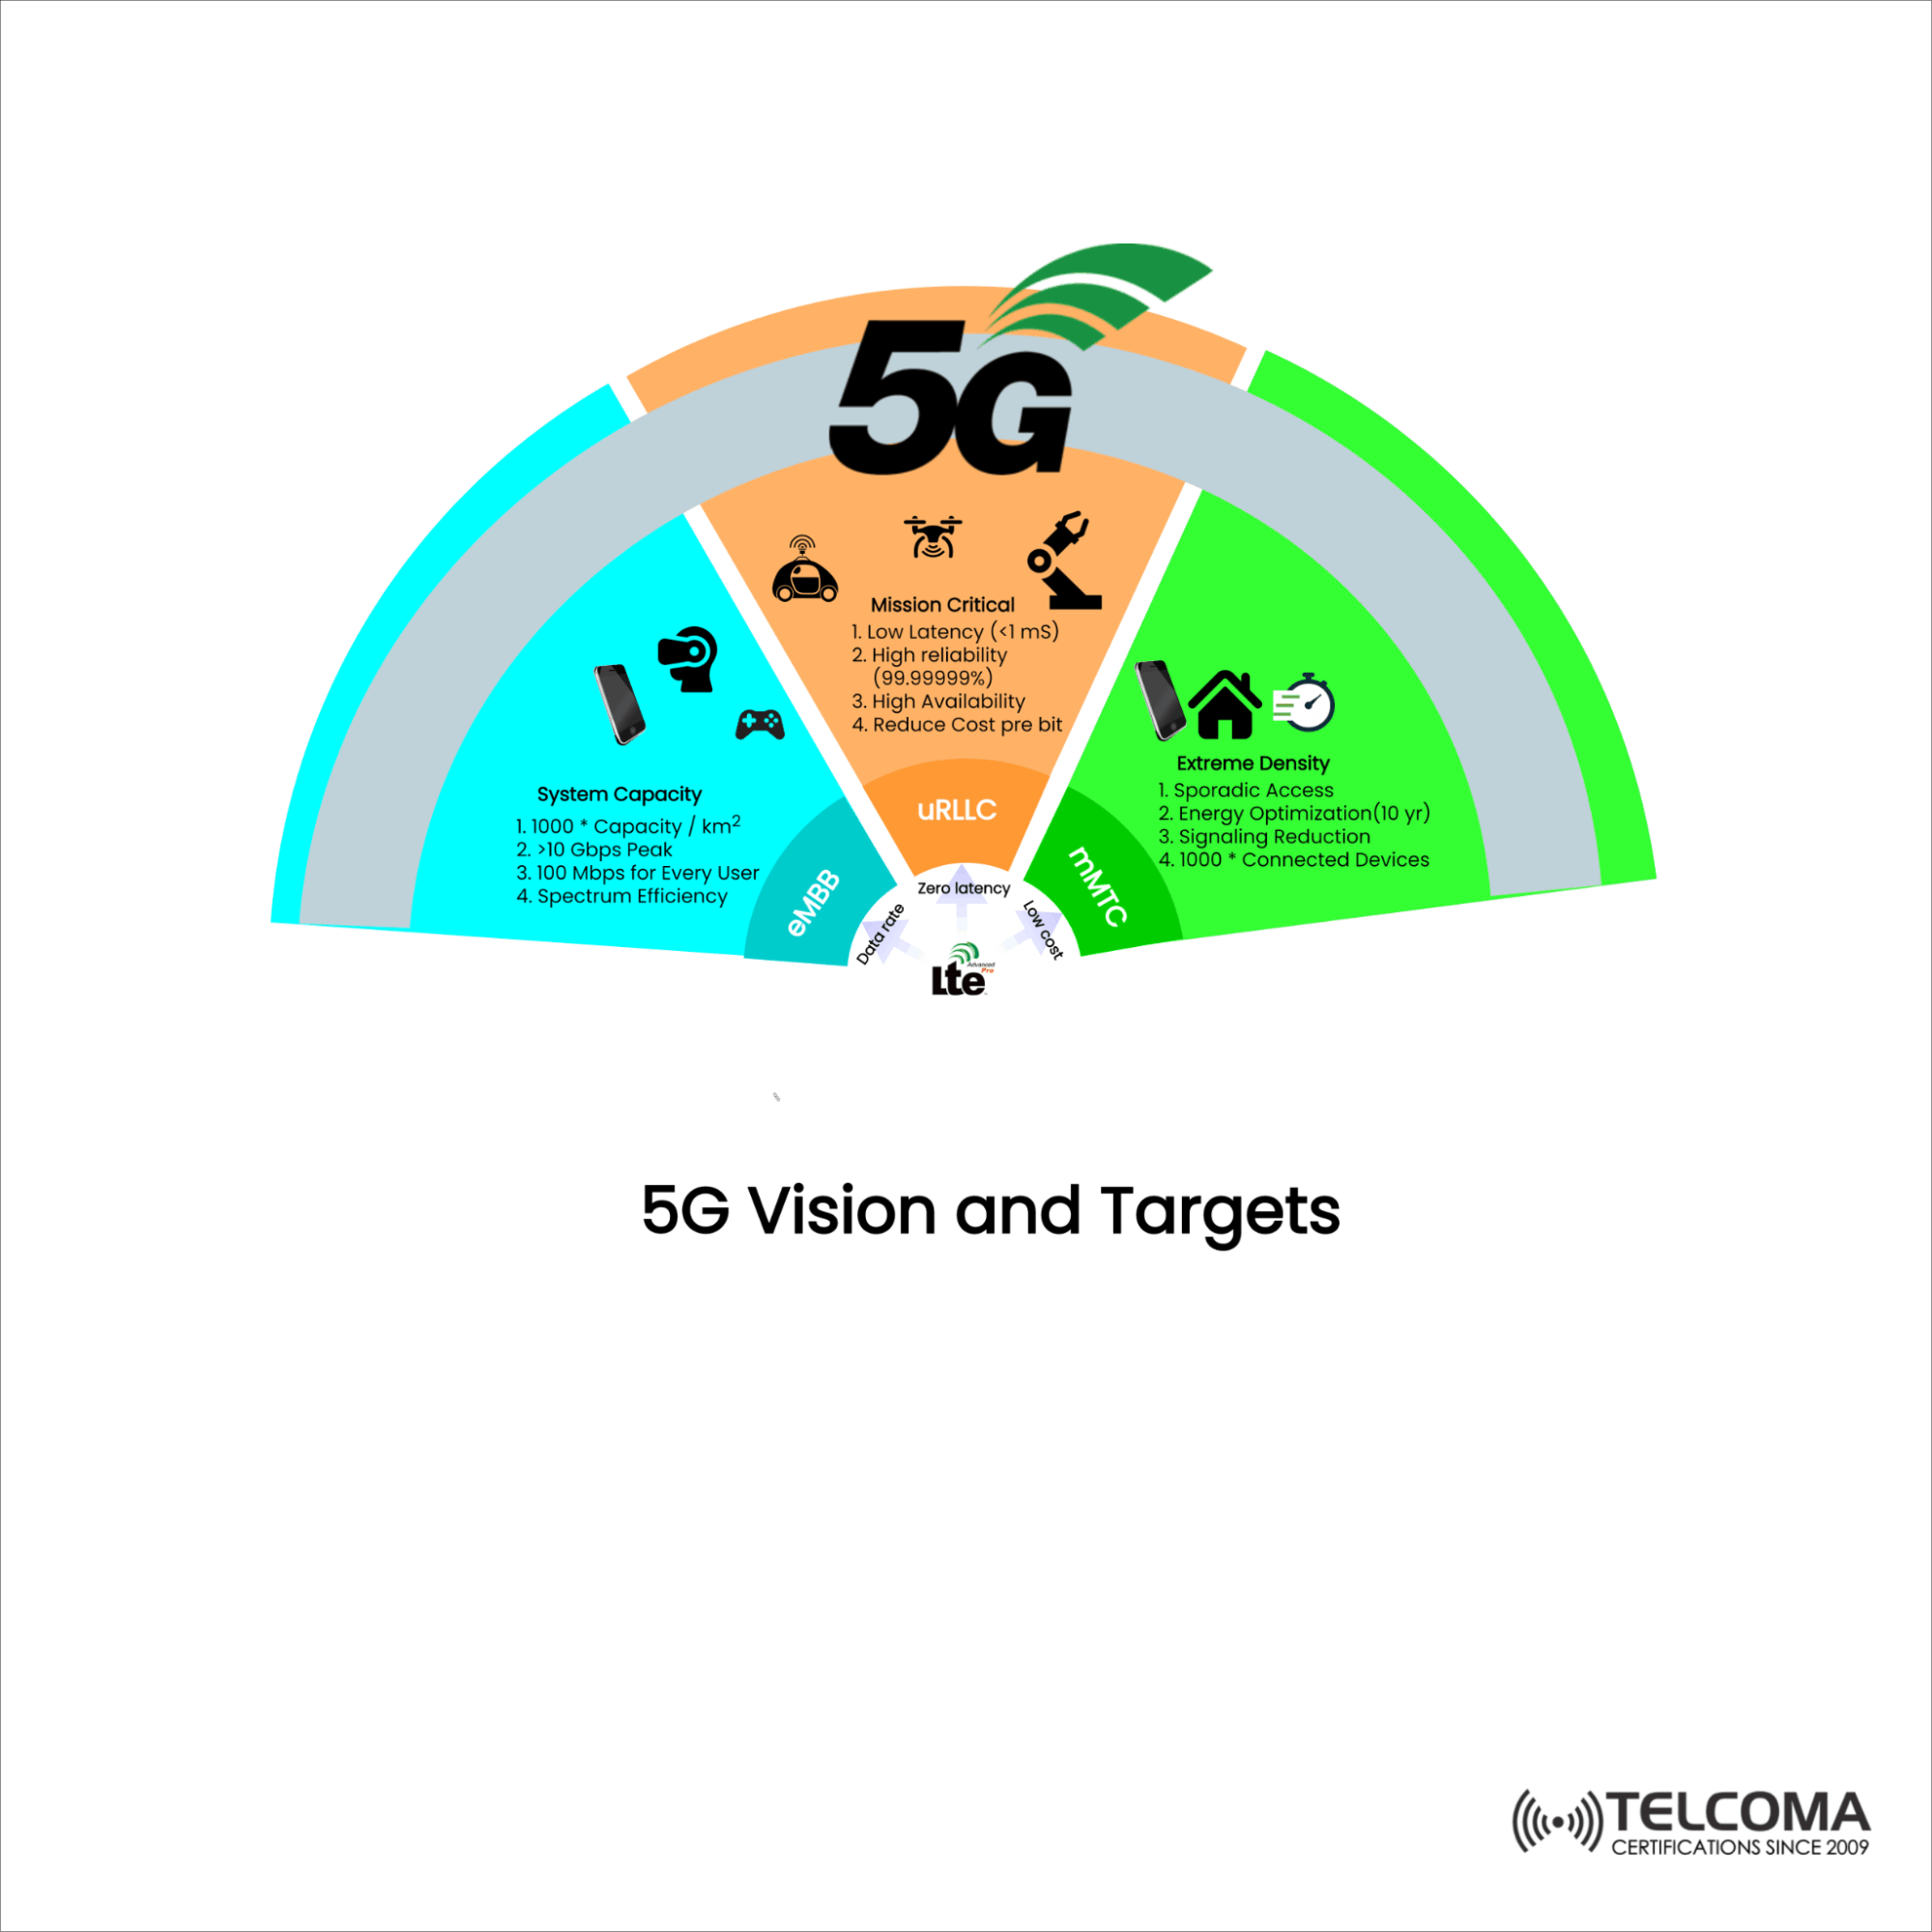 5g vision and targets